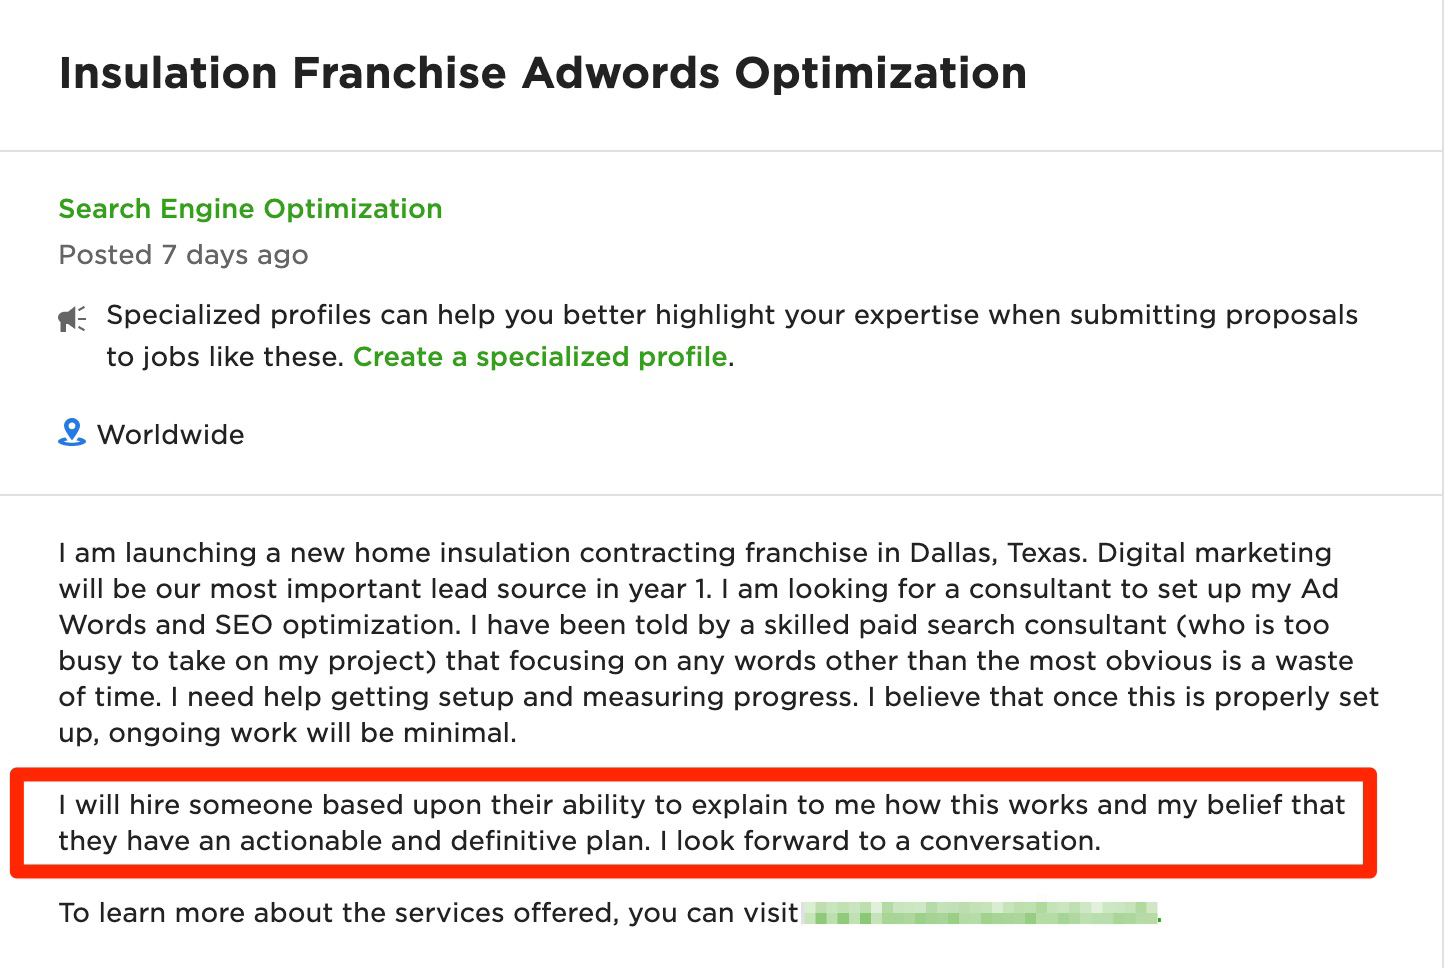 what questions do you have about the project - Upwork job description example